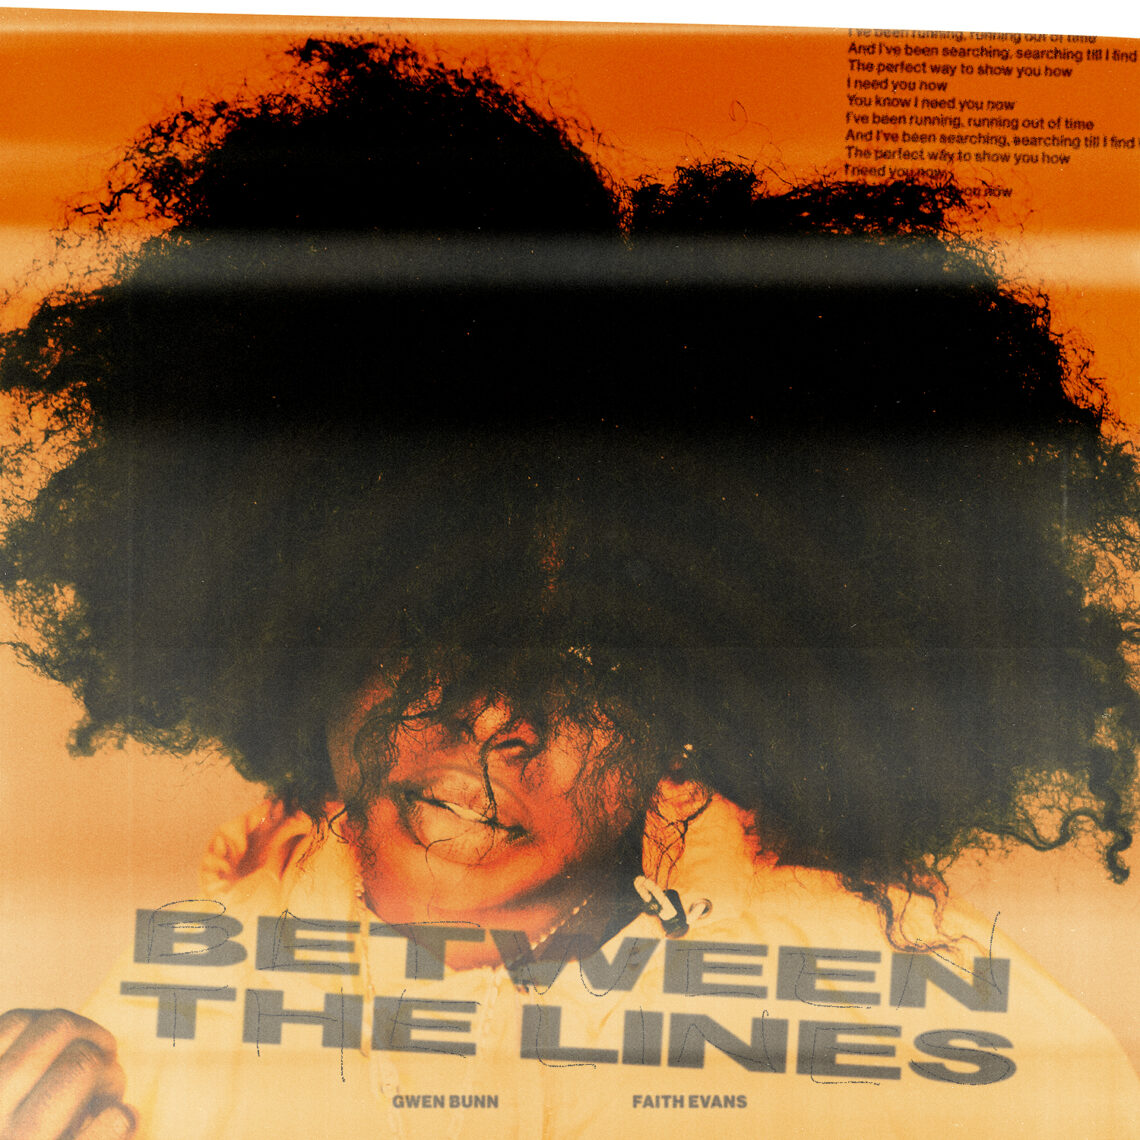 Art for Between The Lines by Gwen Bunn feat. Faith Evans